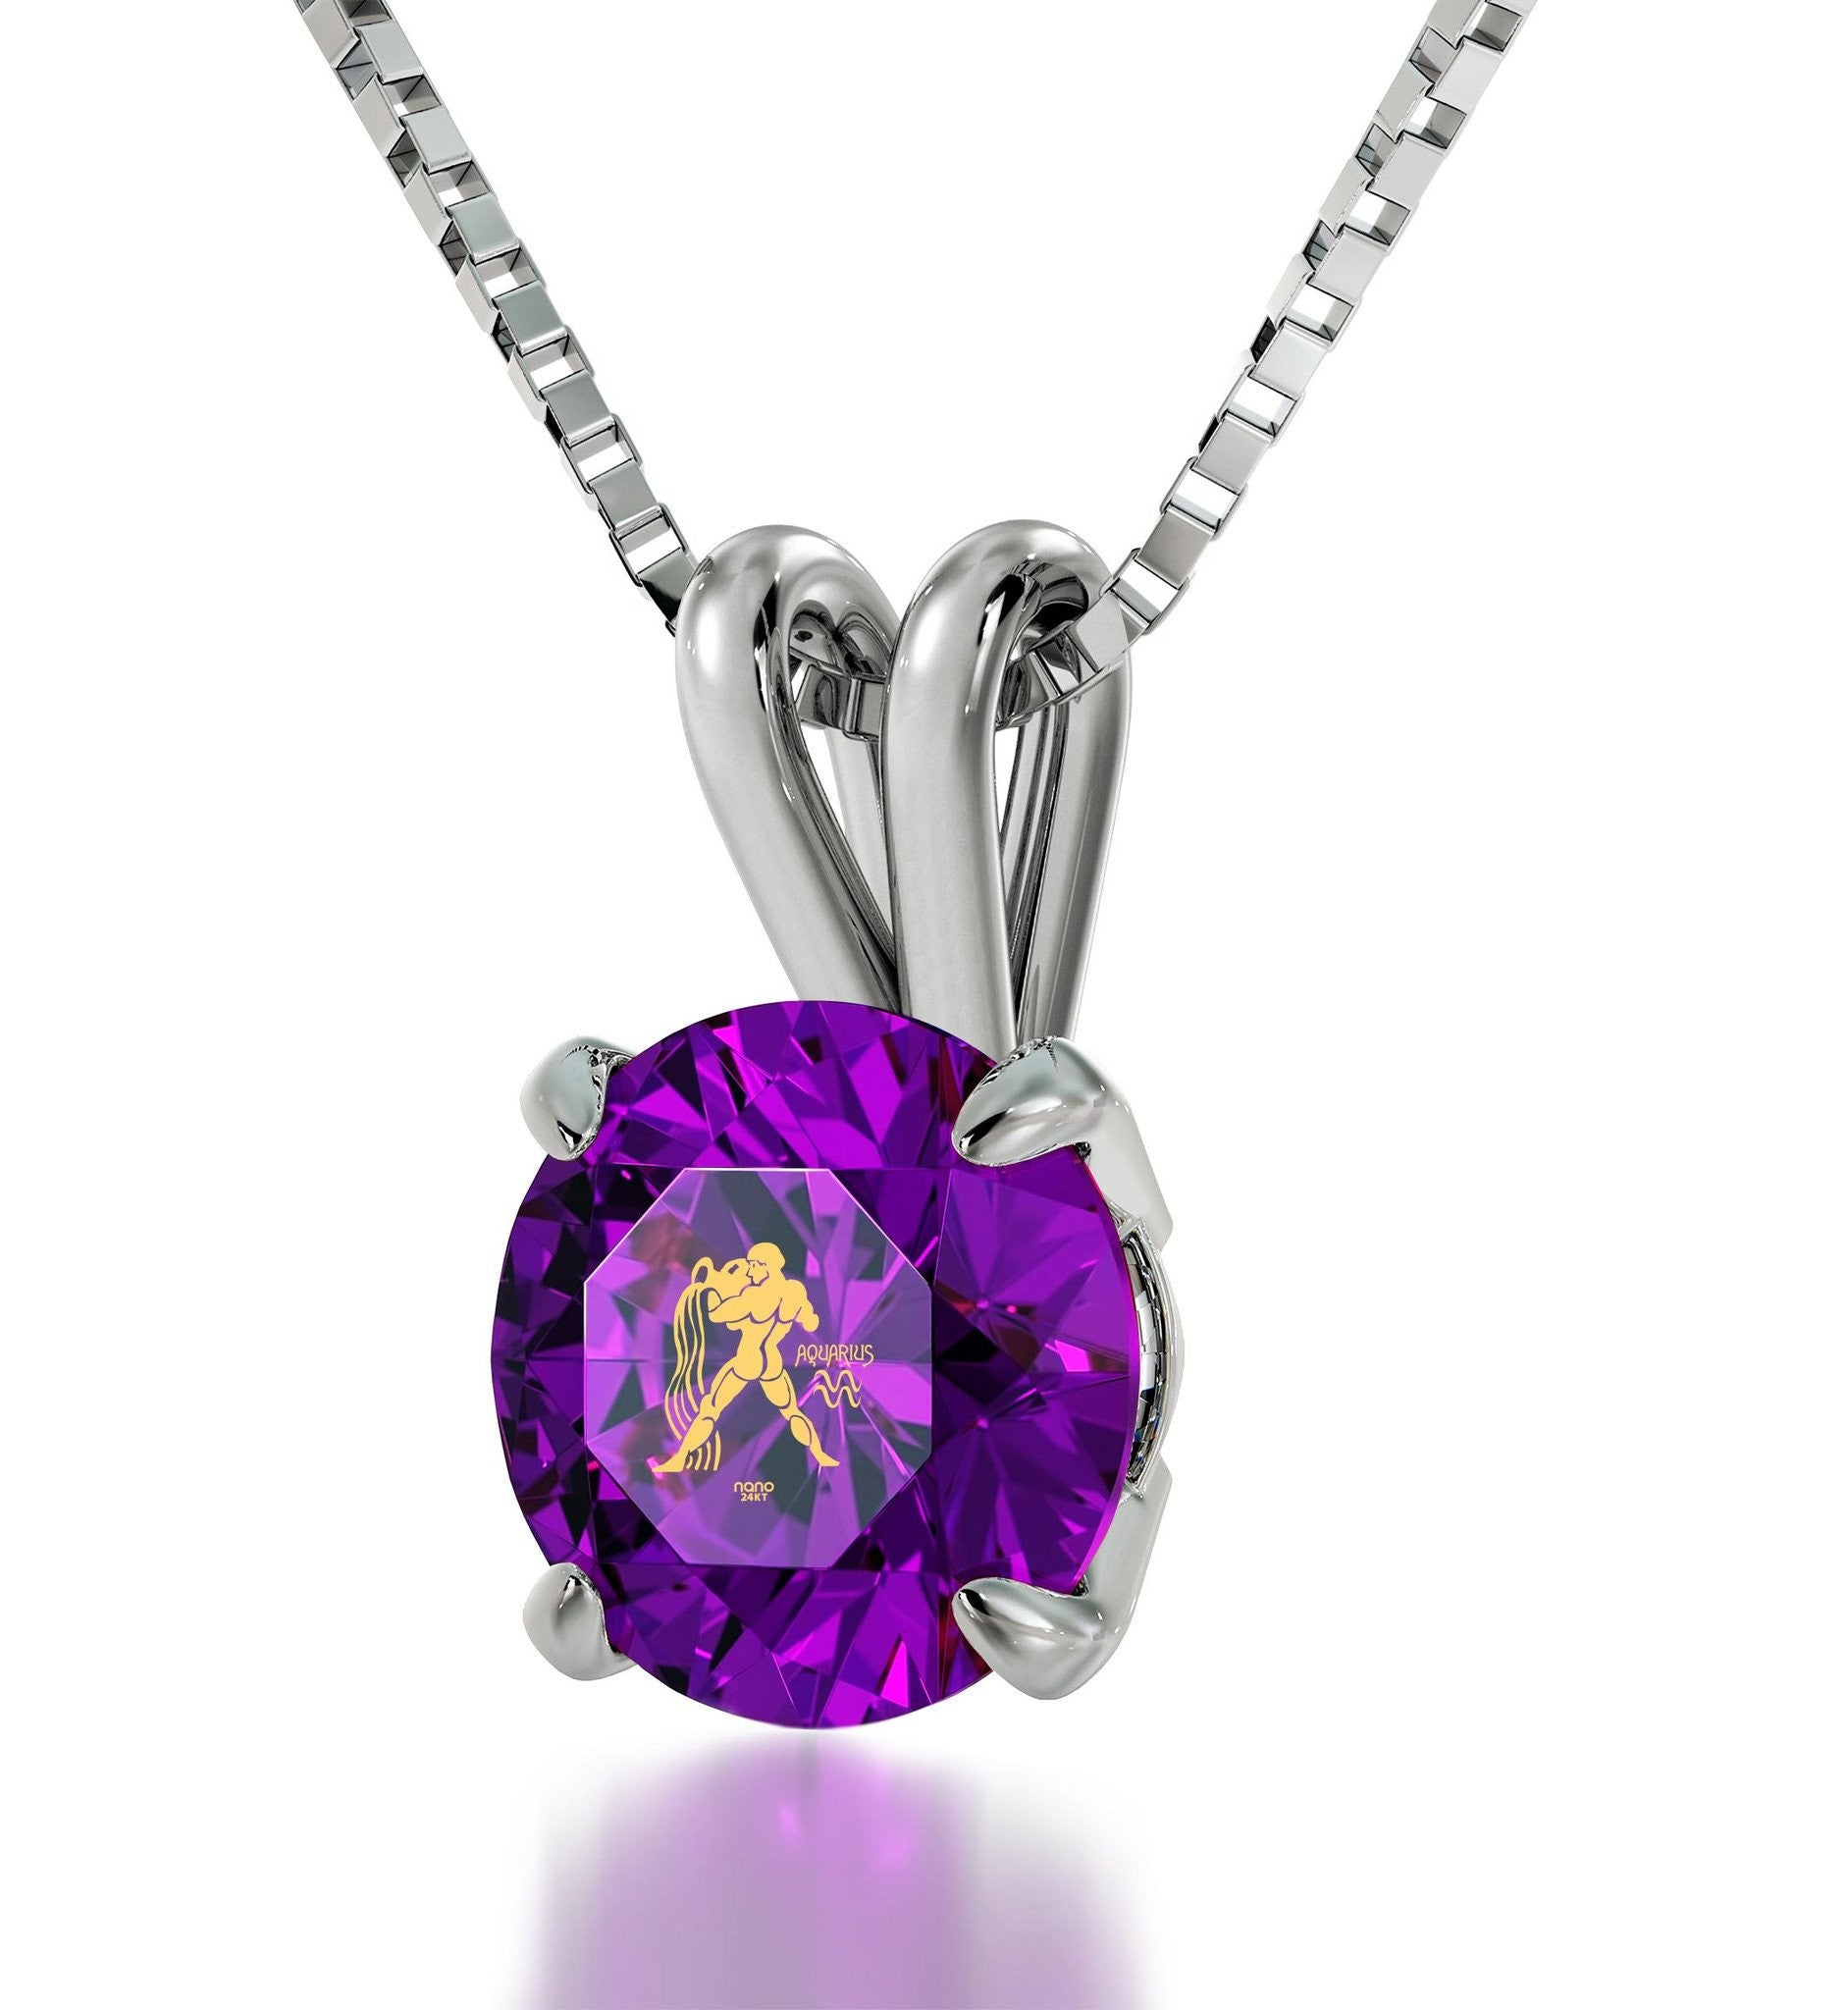 """Aquarius Birthstone Jewelry, Birthday Present for Best Friend, Girlfriend Christmas Gift Ideas, Purple Stone Necklace """